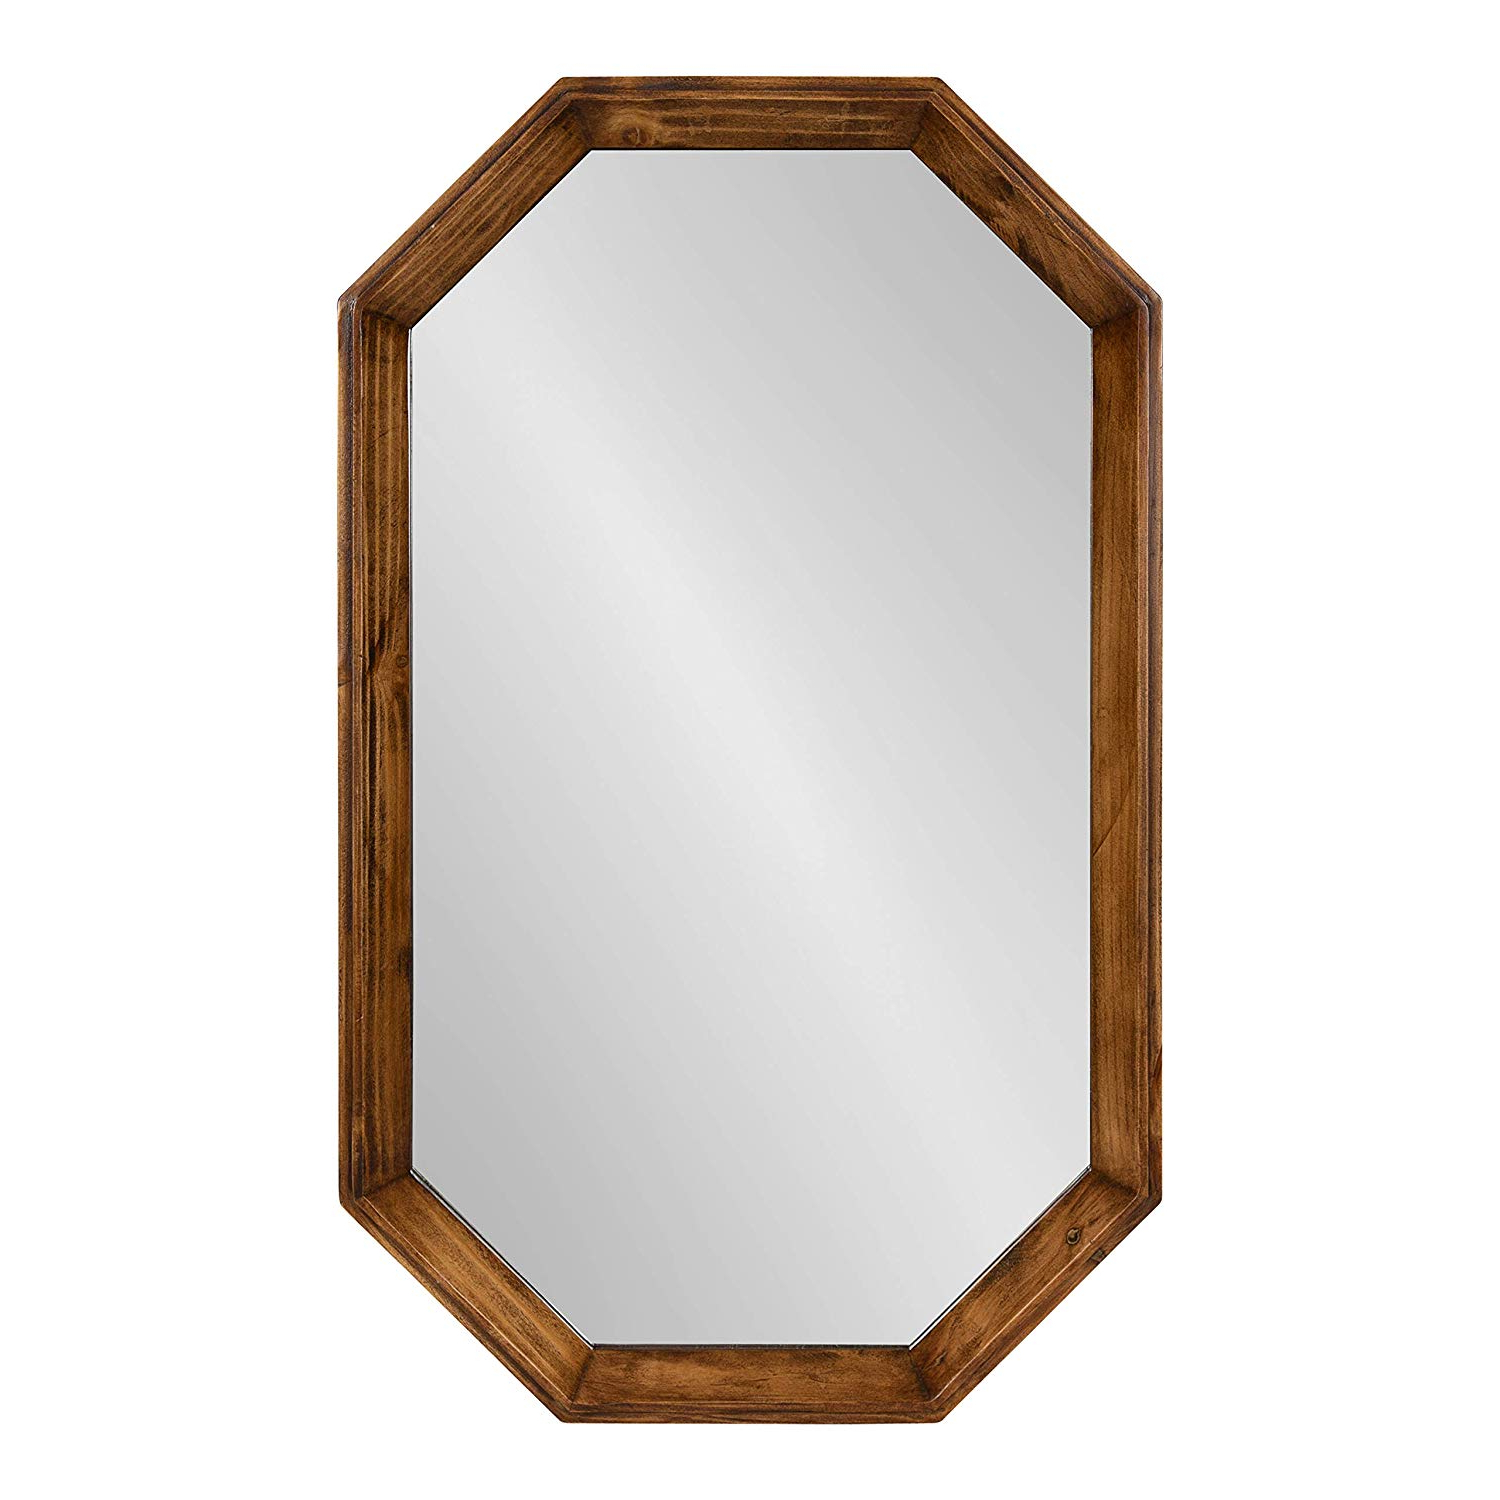 Most Popular Walnut Wood Wall Mirrors In Kate And Laurel Abernathy Mid Century Modern Octagon Wood Wall Mirror,  Walnut Brown (View 7 of 20)